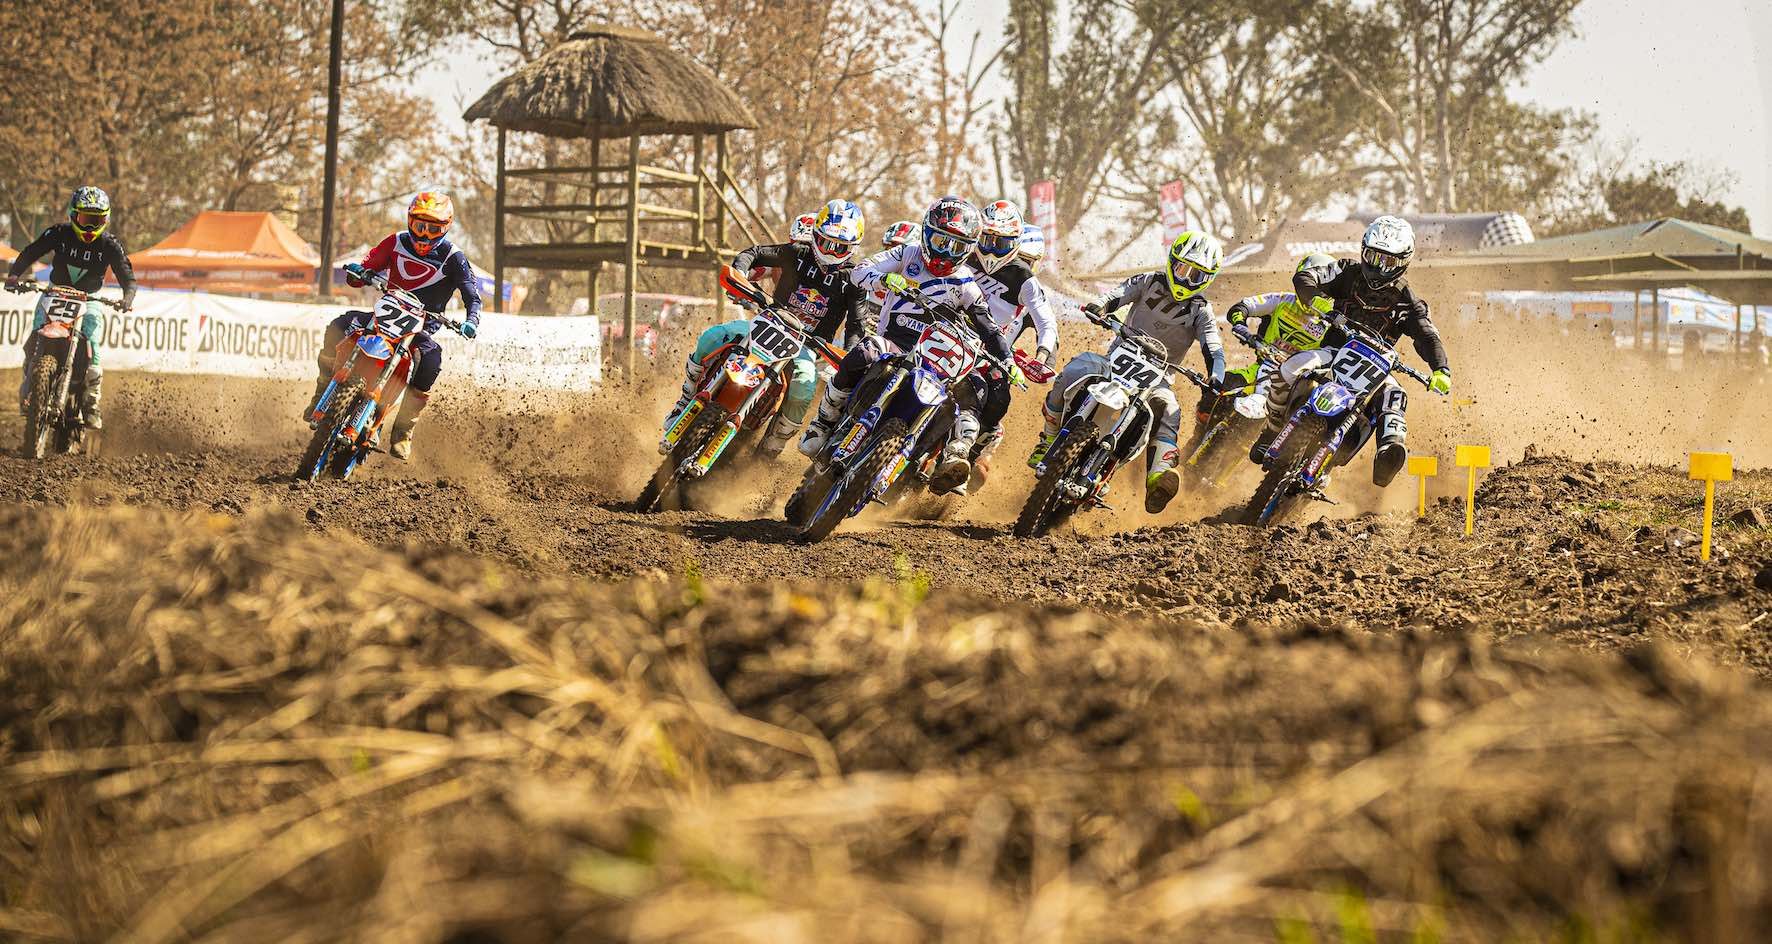 Race Report and Results from Round 5 of the 2019 TRP Distributors South African National Motocross Championship from the PMB MX Club in Pietermaritzburg.